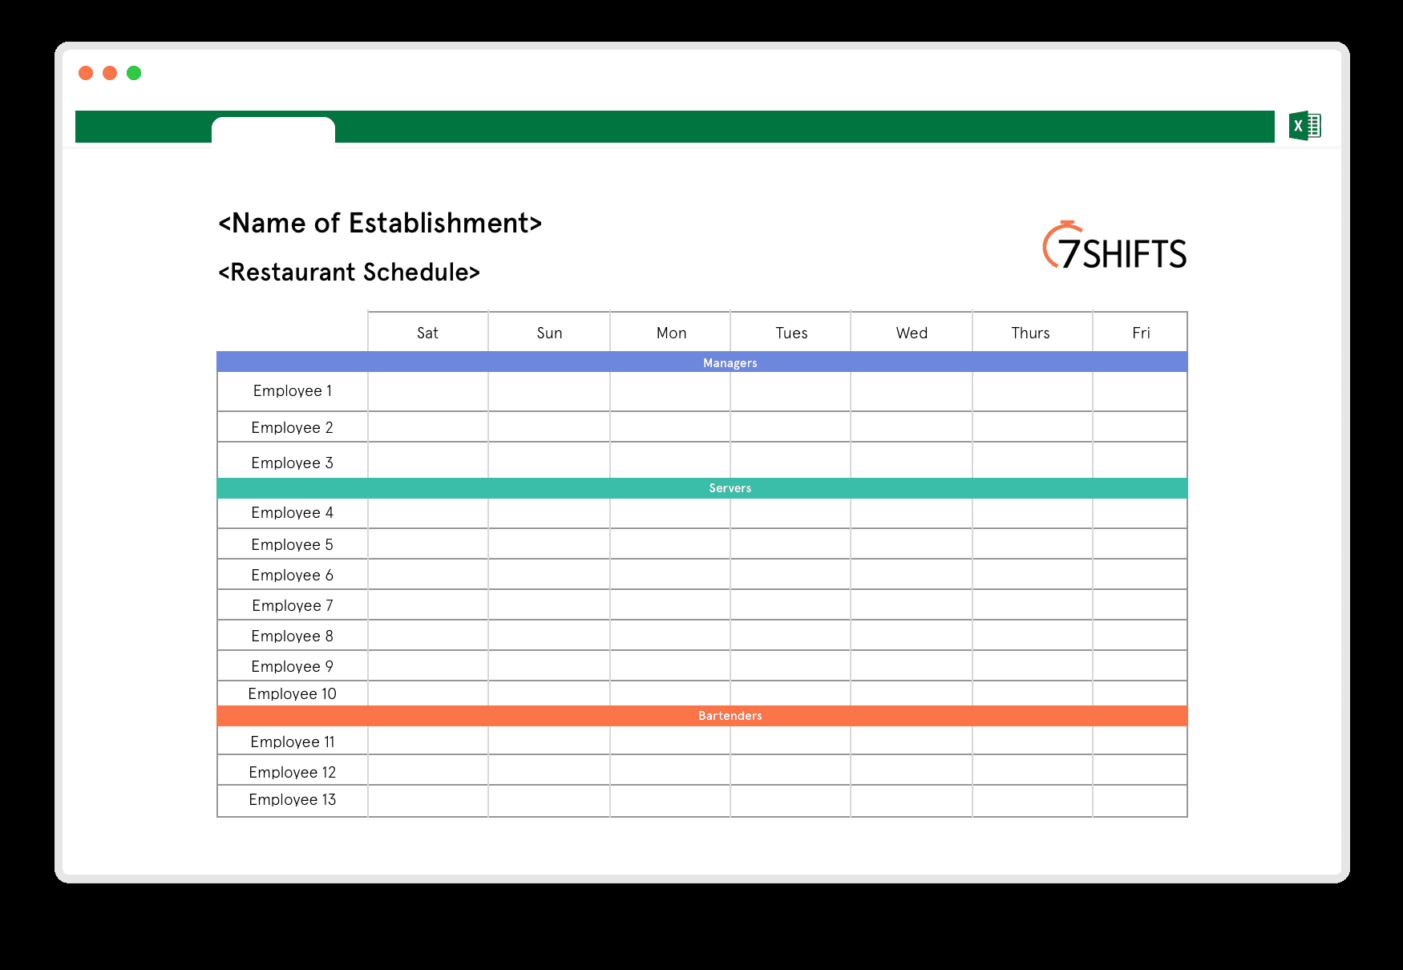 Restaurant Schedule Excel Template | 7Shifts To Employee Schedule Excel Spreadsheet